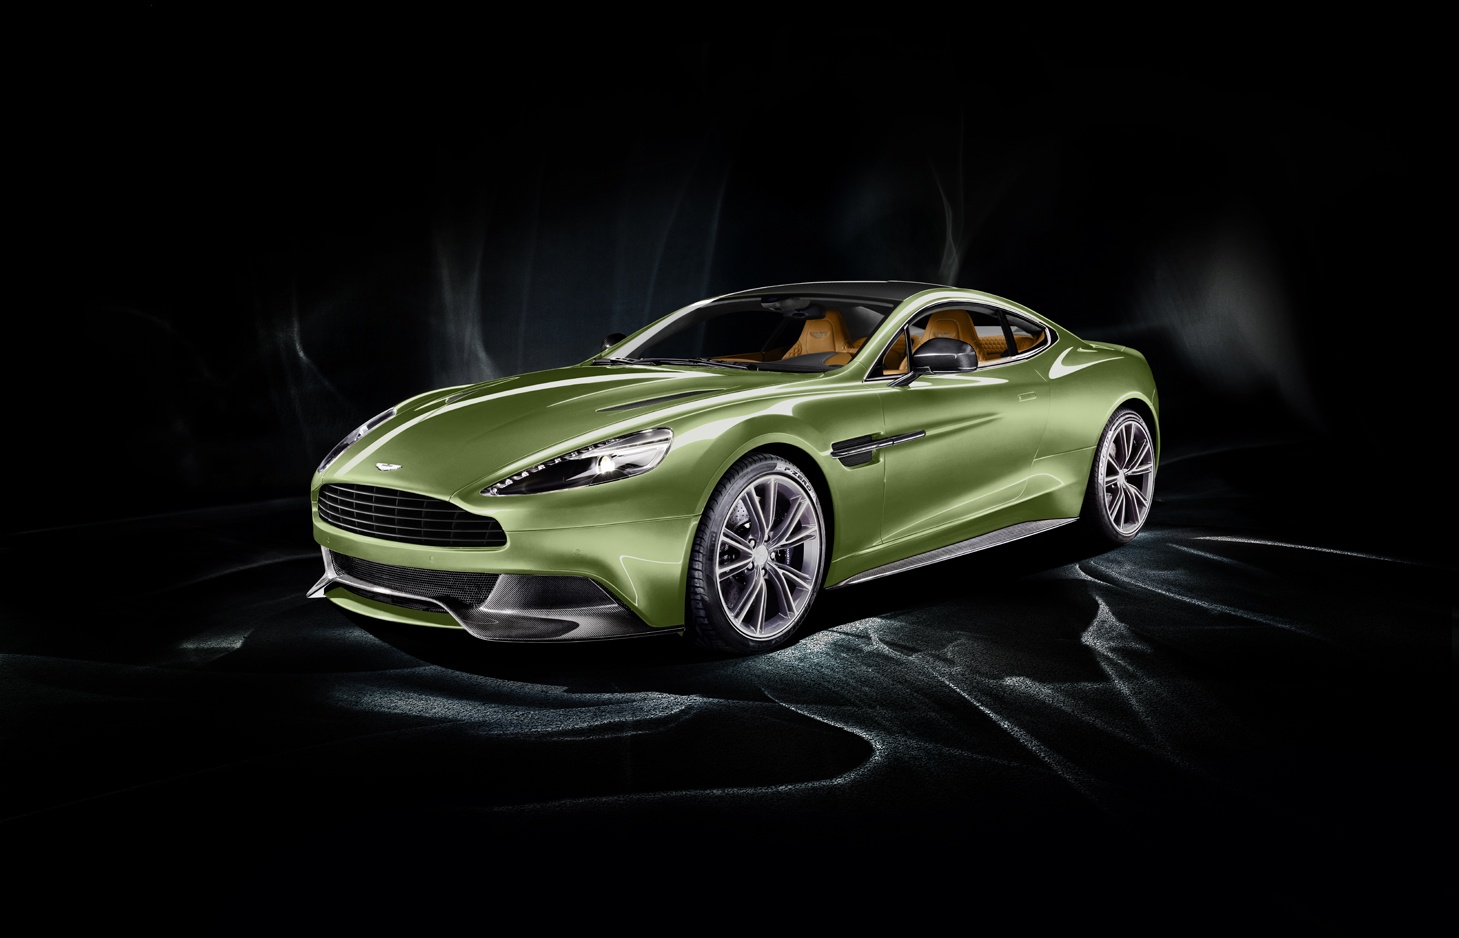 Video Find Aston Martin Shows Off The Vanquish From All Angles